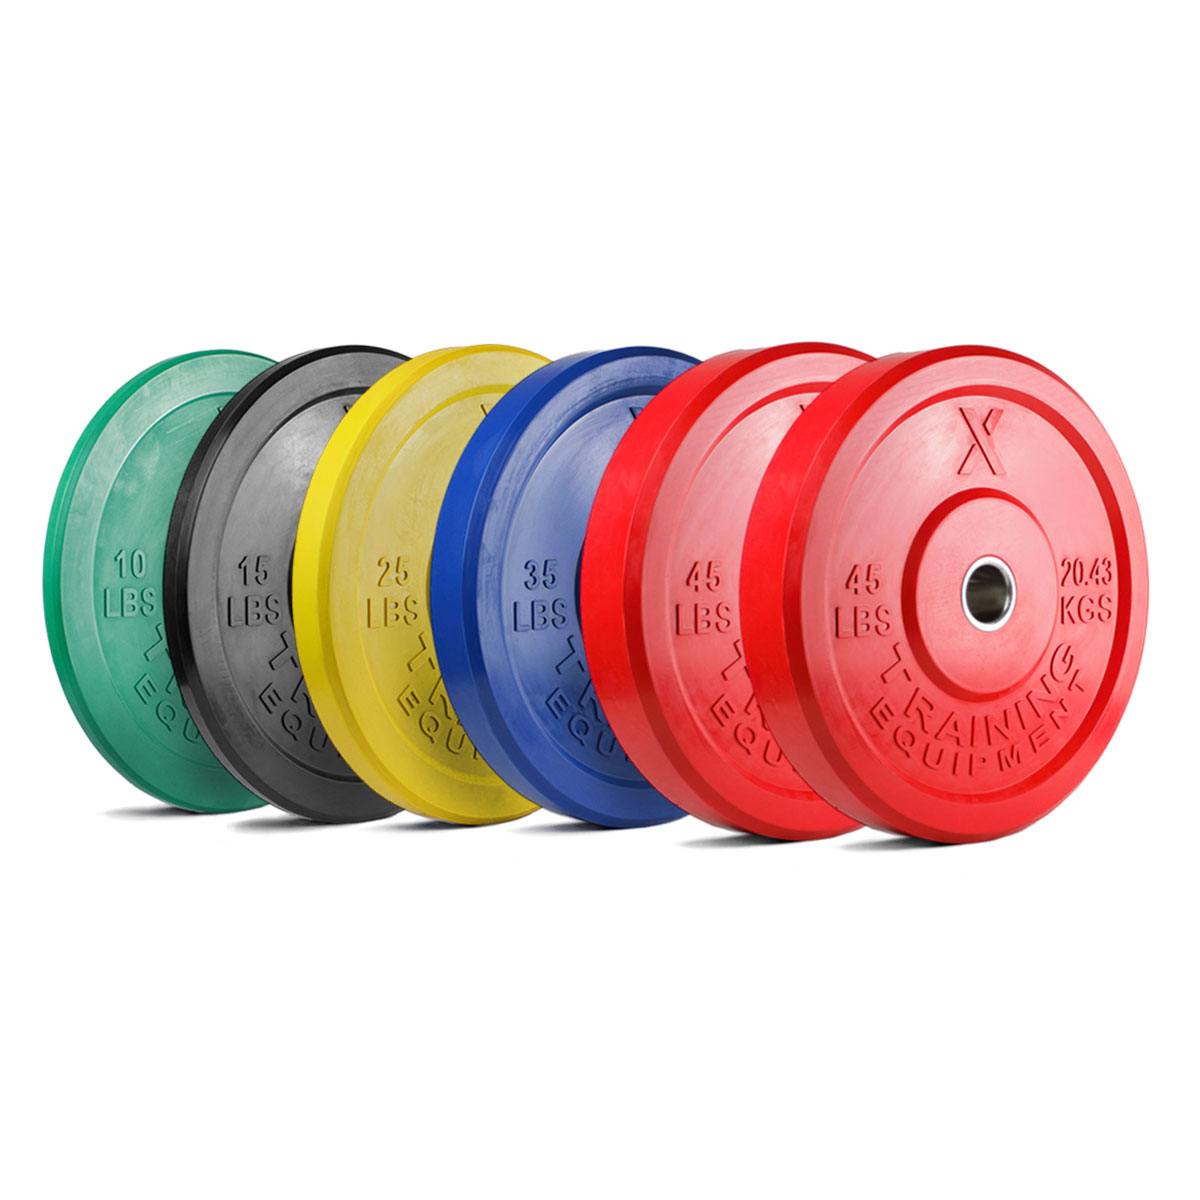 Premium Color Bumper Plates and Sets